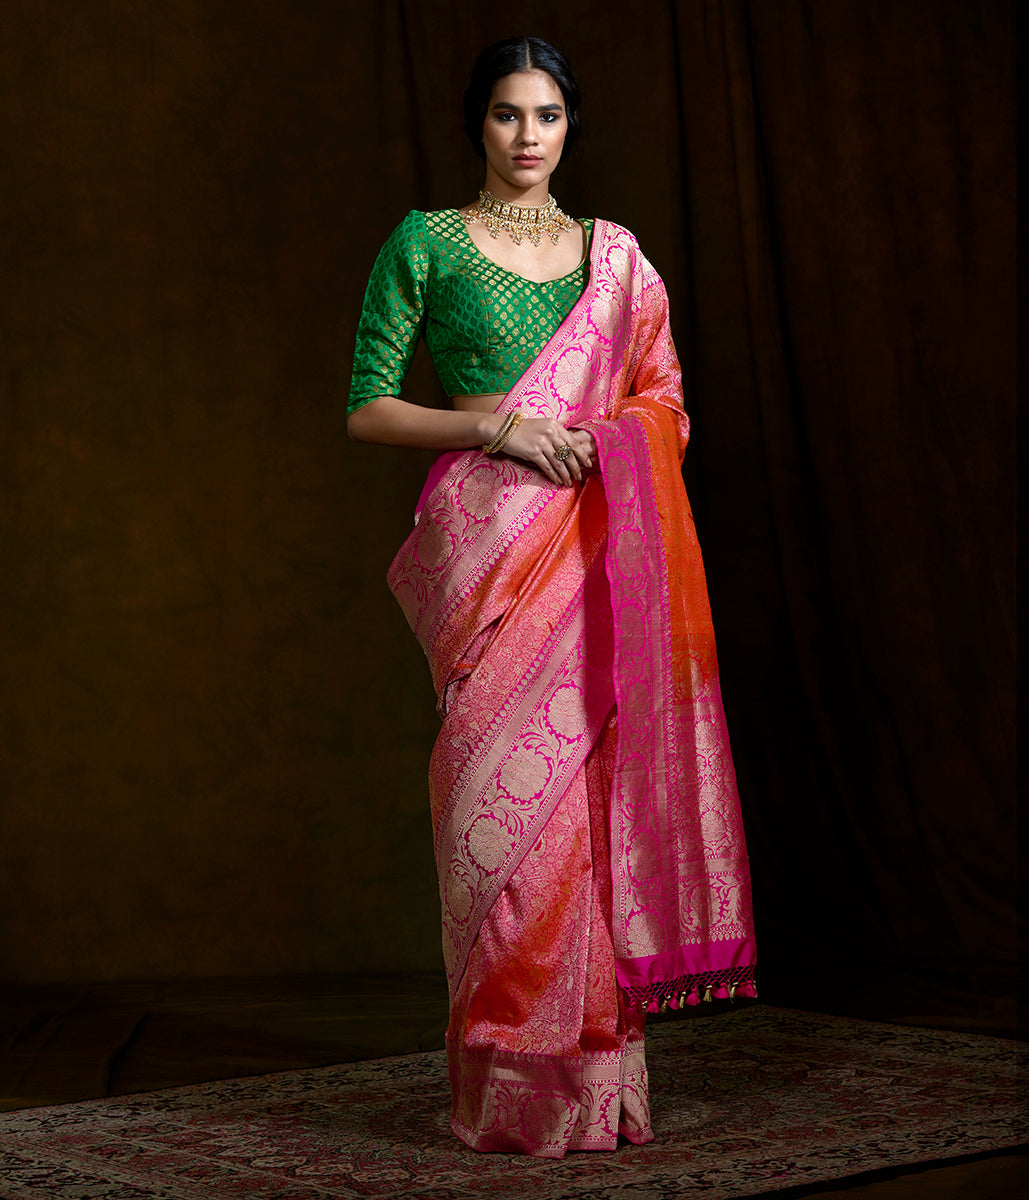 Pink Dampaj weave jangla with meenakari and floral border